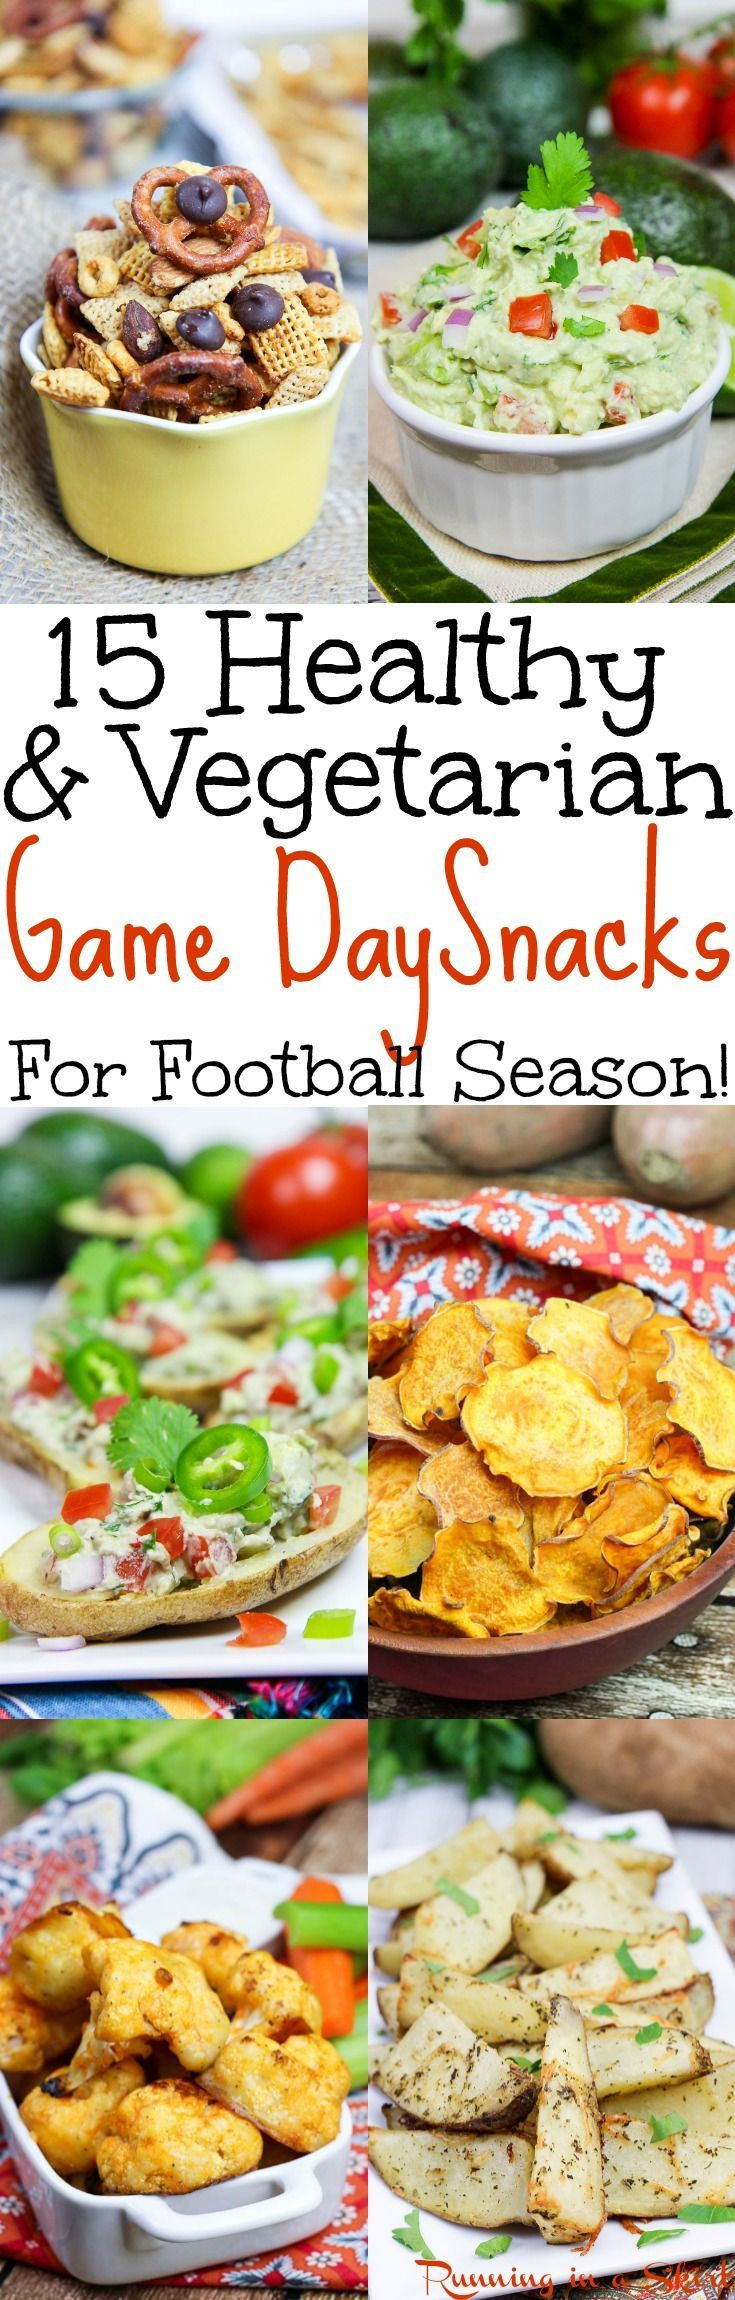 Vegetarian Game Day Recipes  The Best Ideas for Ve arian Game Day Recipes Best